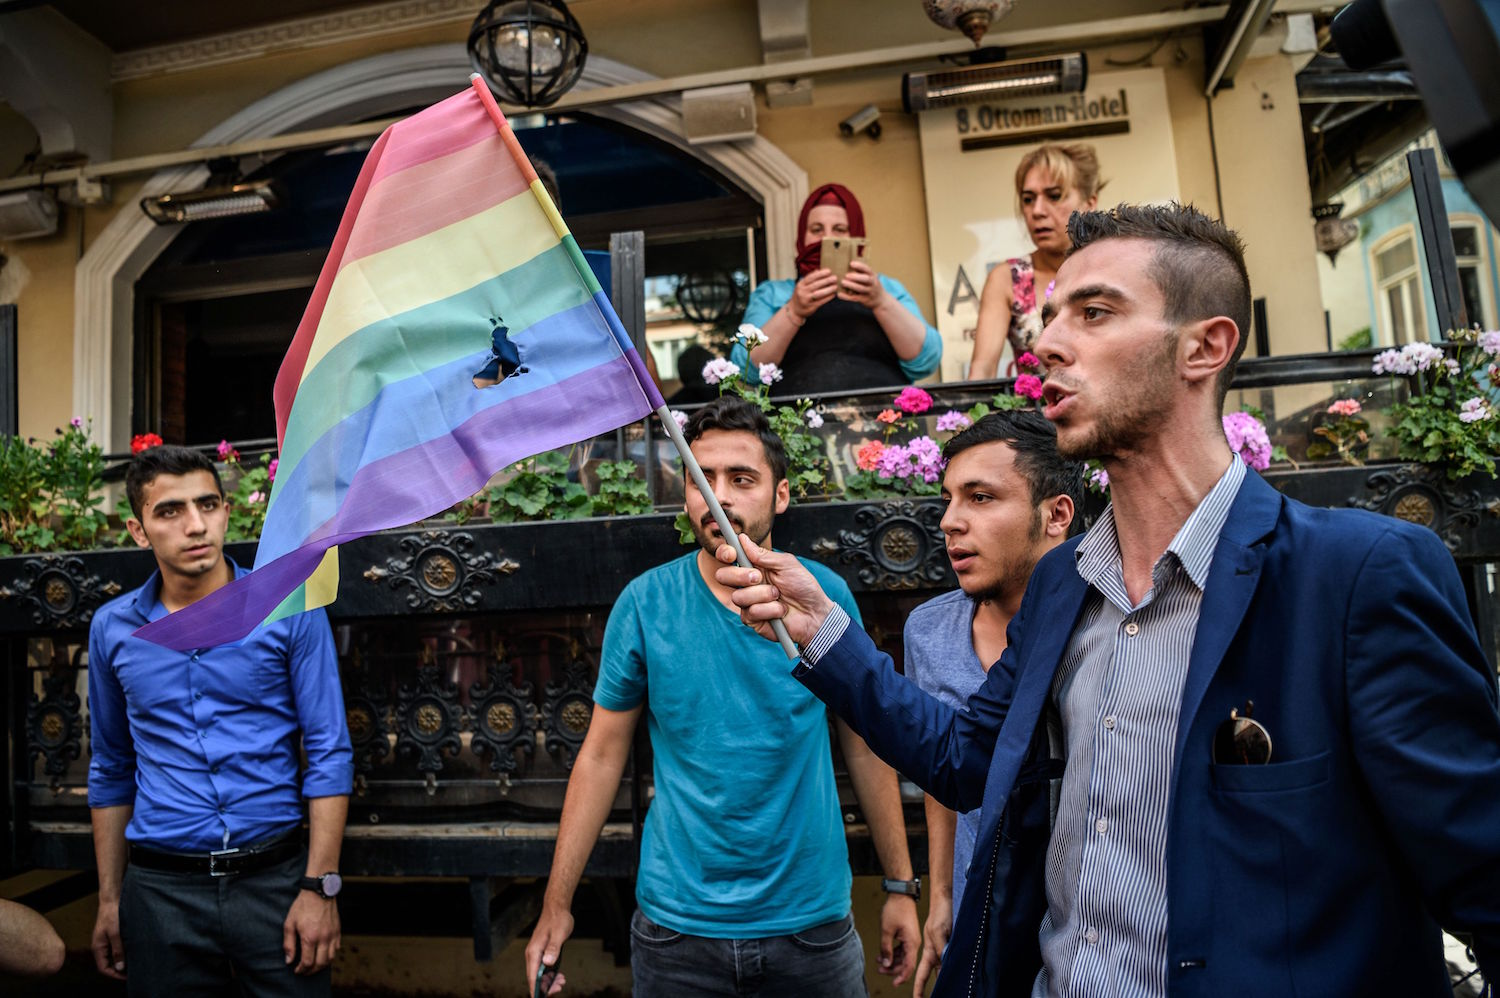 """Turkish nationalists burn a rainbow flag during a rally staged by the LGBT community on Istiklal avenue in Istanbul on June 19, 2016. Turkish riot police fired rubber bullets and tear gas to break up a rally staged by the LGBT community in Istanbul on June 19 in defiance of a ban. Several hundred police surrounded the main Taksim Square -- where all demonstrations have been banned since 2013 -- to prevent the """"Trans Pride"""" event taking place during Ramadan.  / AFP / OZAN KOSE        (Photo credit should read OZAN KOSE/AFP/Getty Images)"""